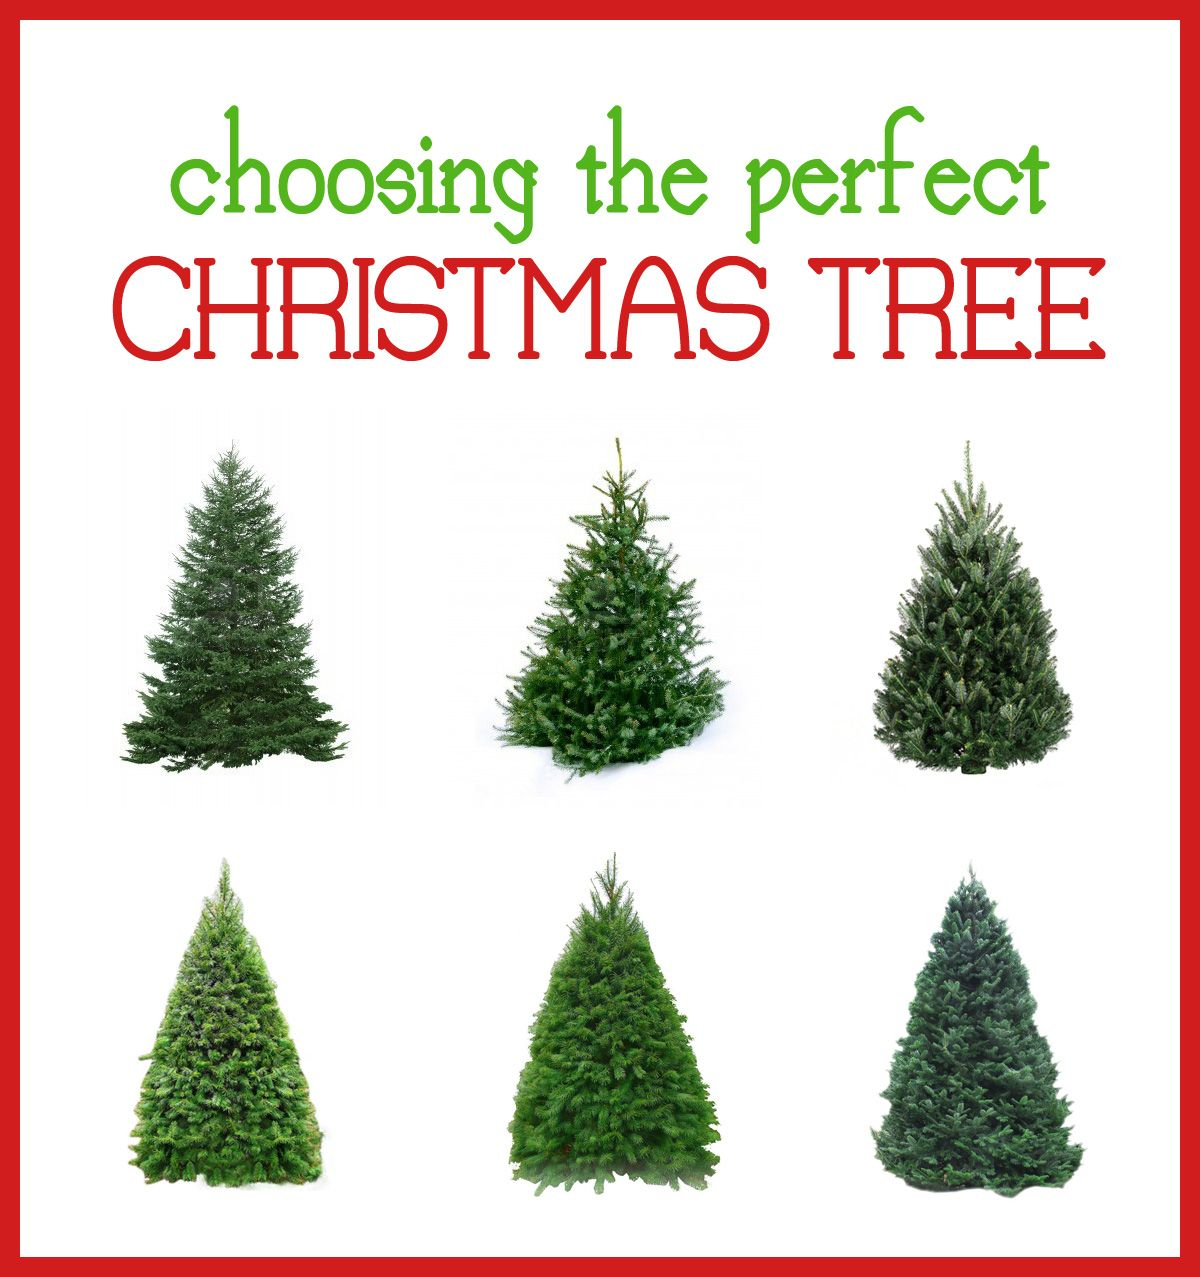 tips for choosing the perfect Christmas tree | November | Pinterest ...